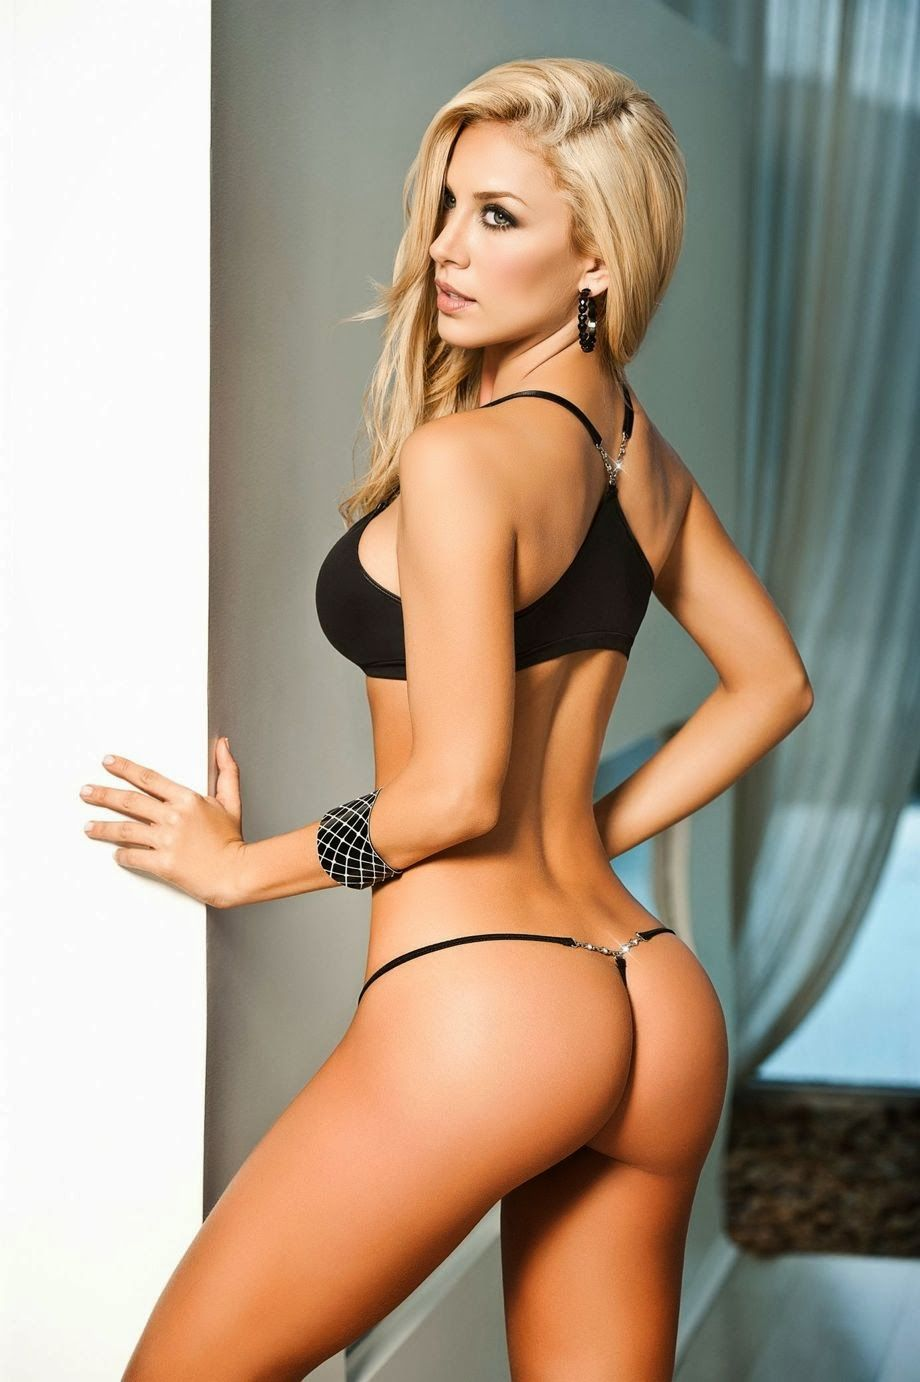 Sexy blonde lingerie models